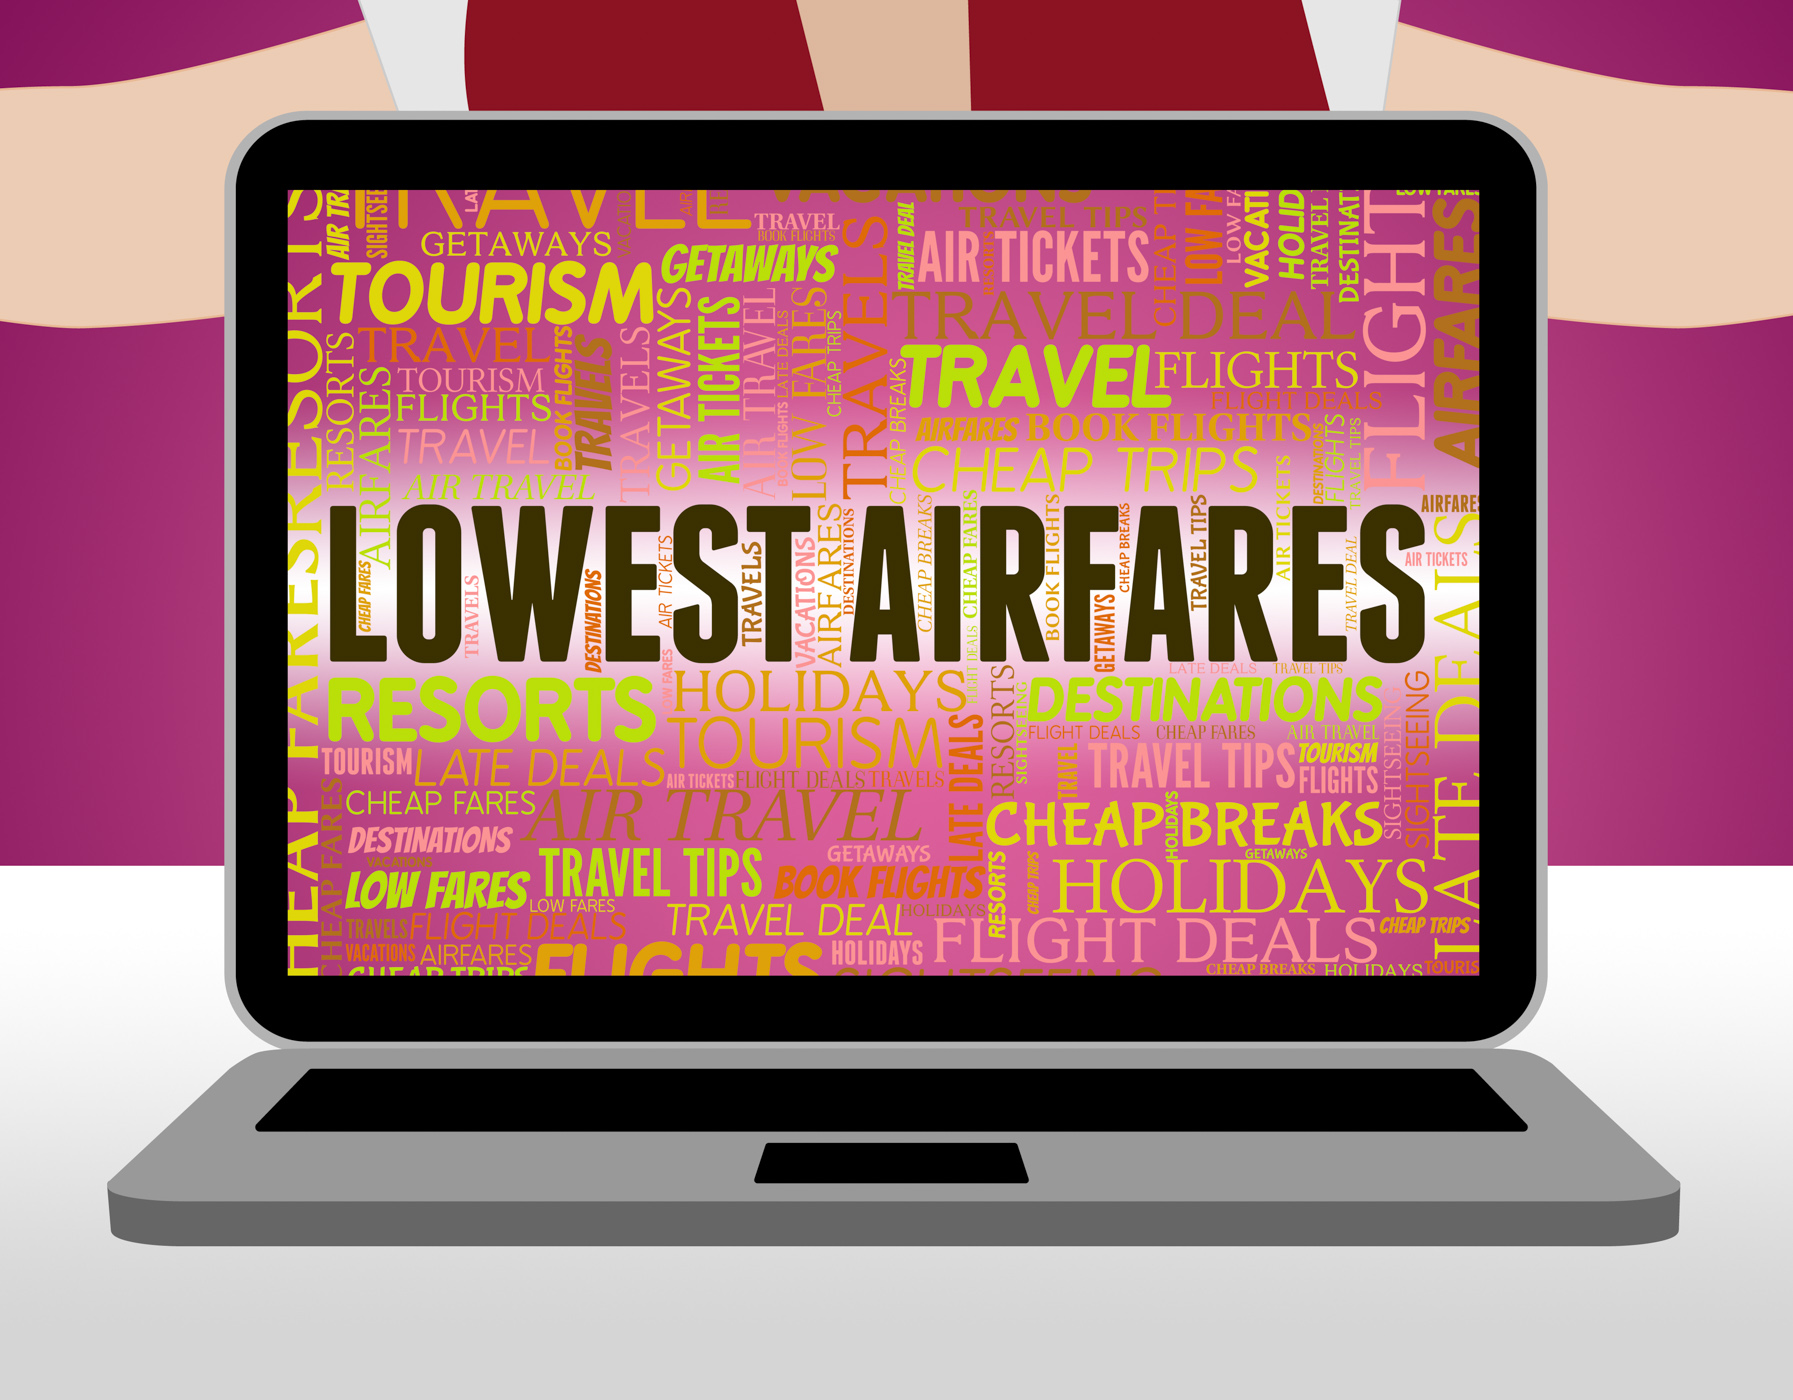 Lowest airfares indicates current price and aircraft photo